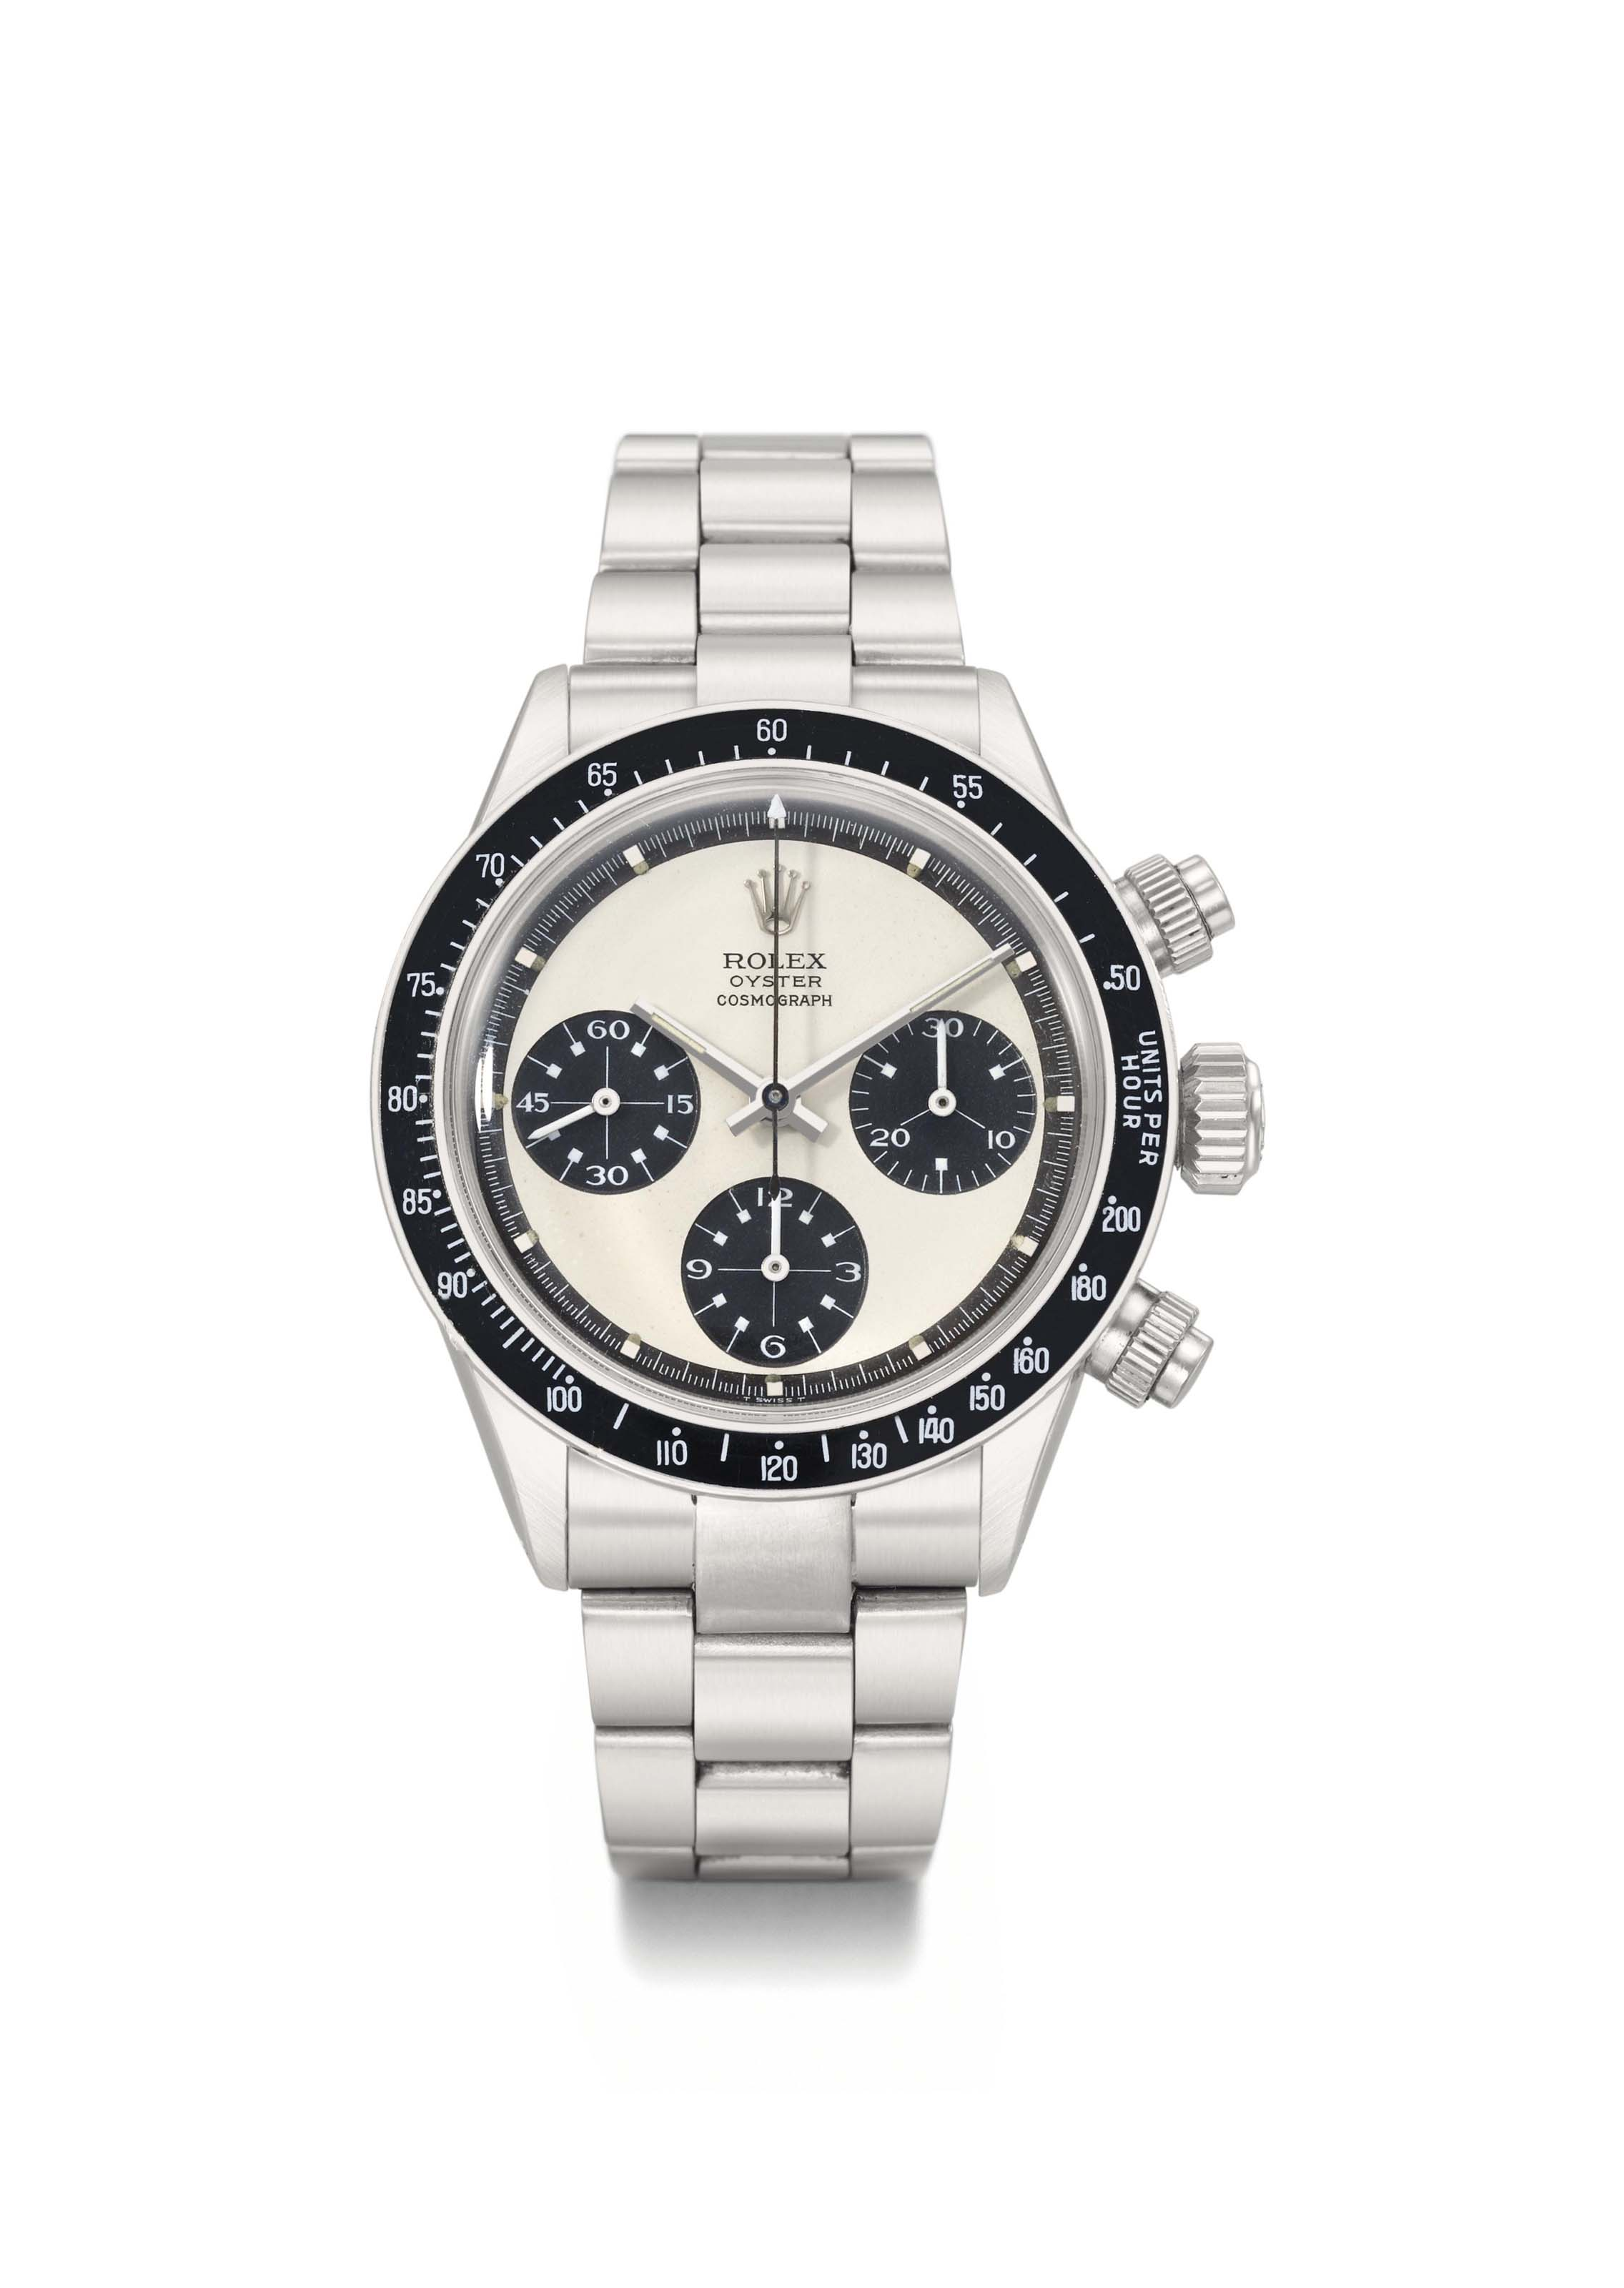 Rolex. A very rare and highly attractive stainless steel chronograph wristwatch with bracelet